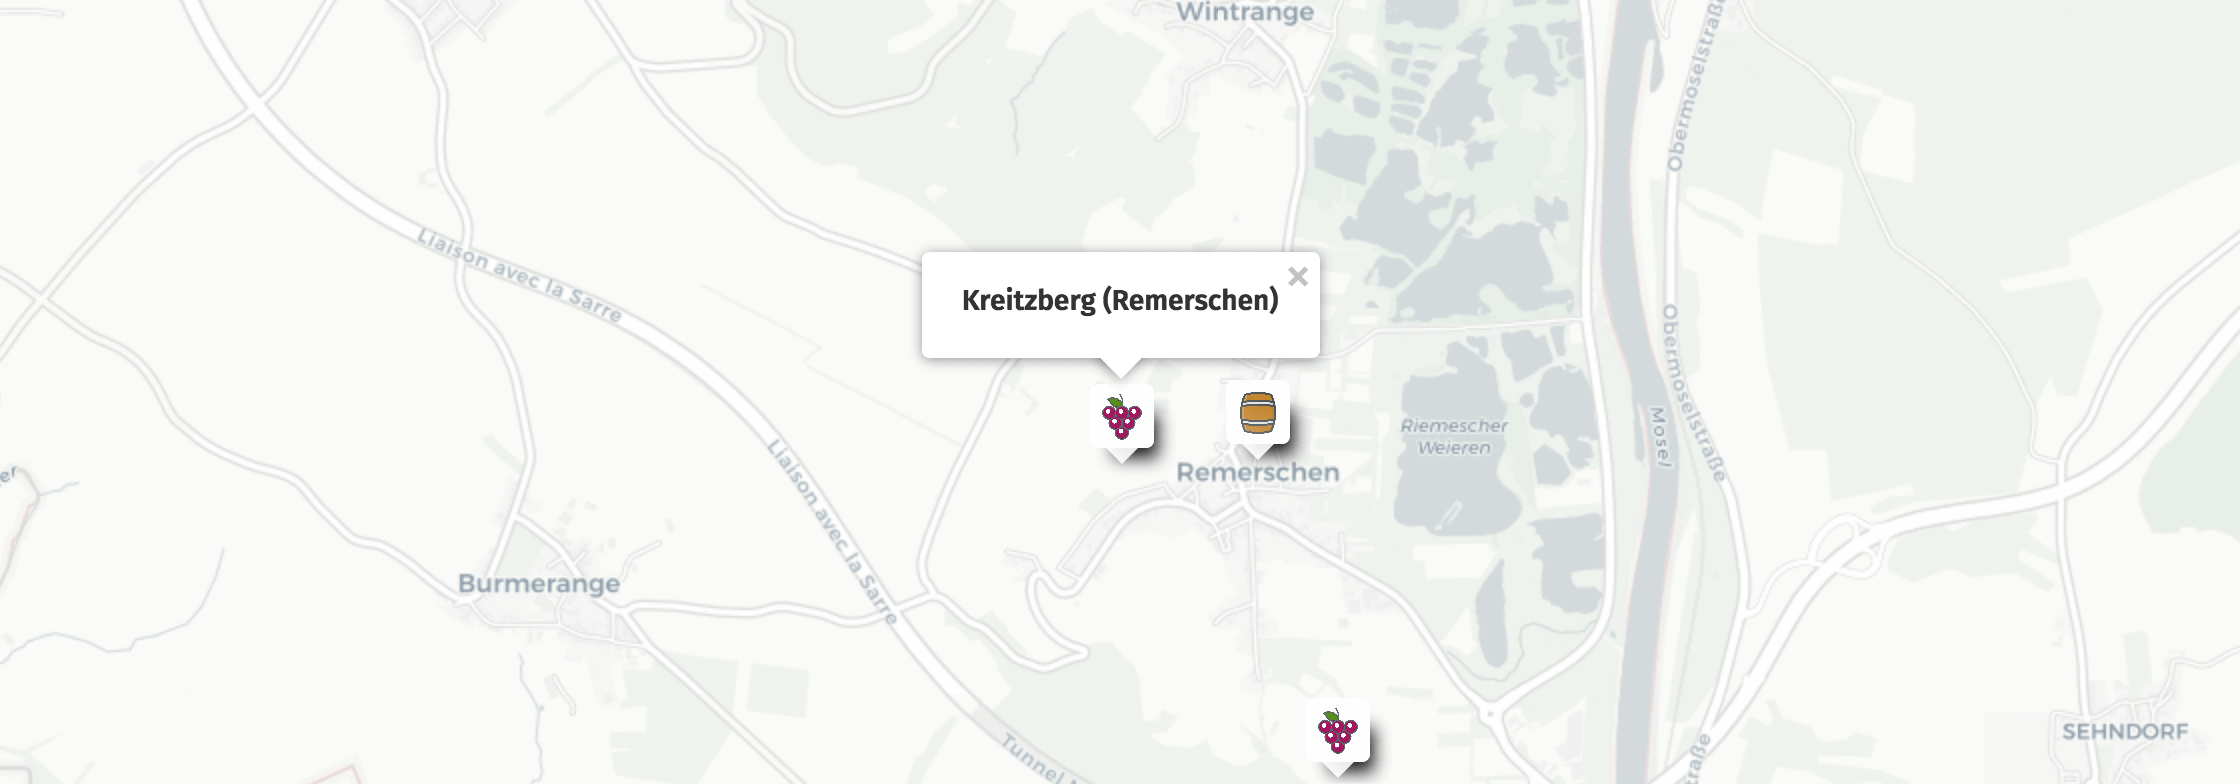 Geolocation of Kreitzberg wines in Remerschen